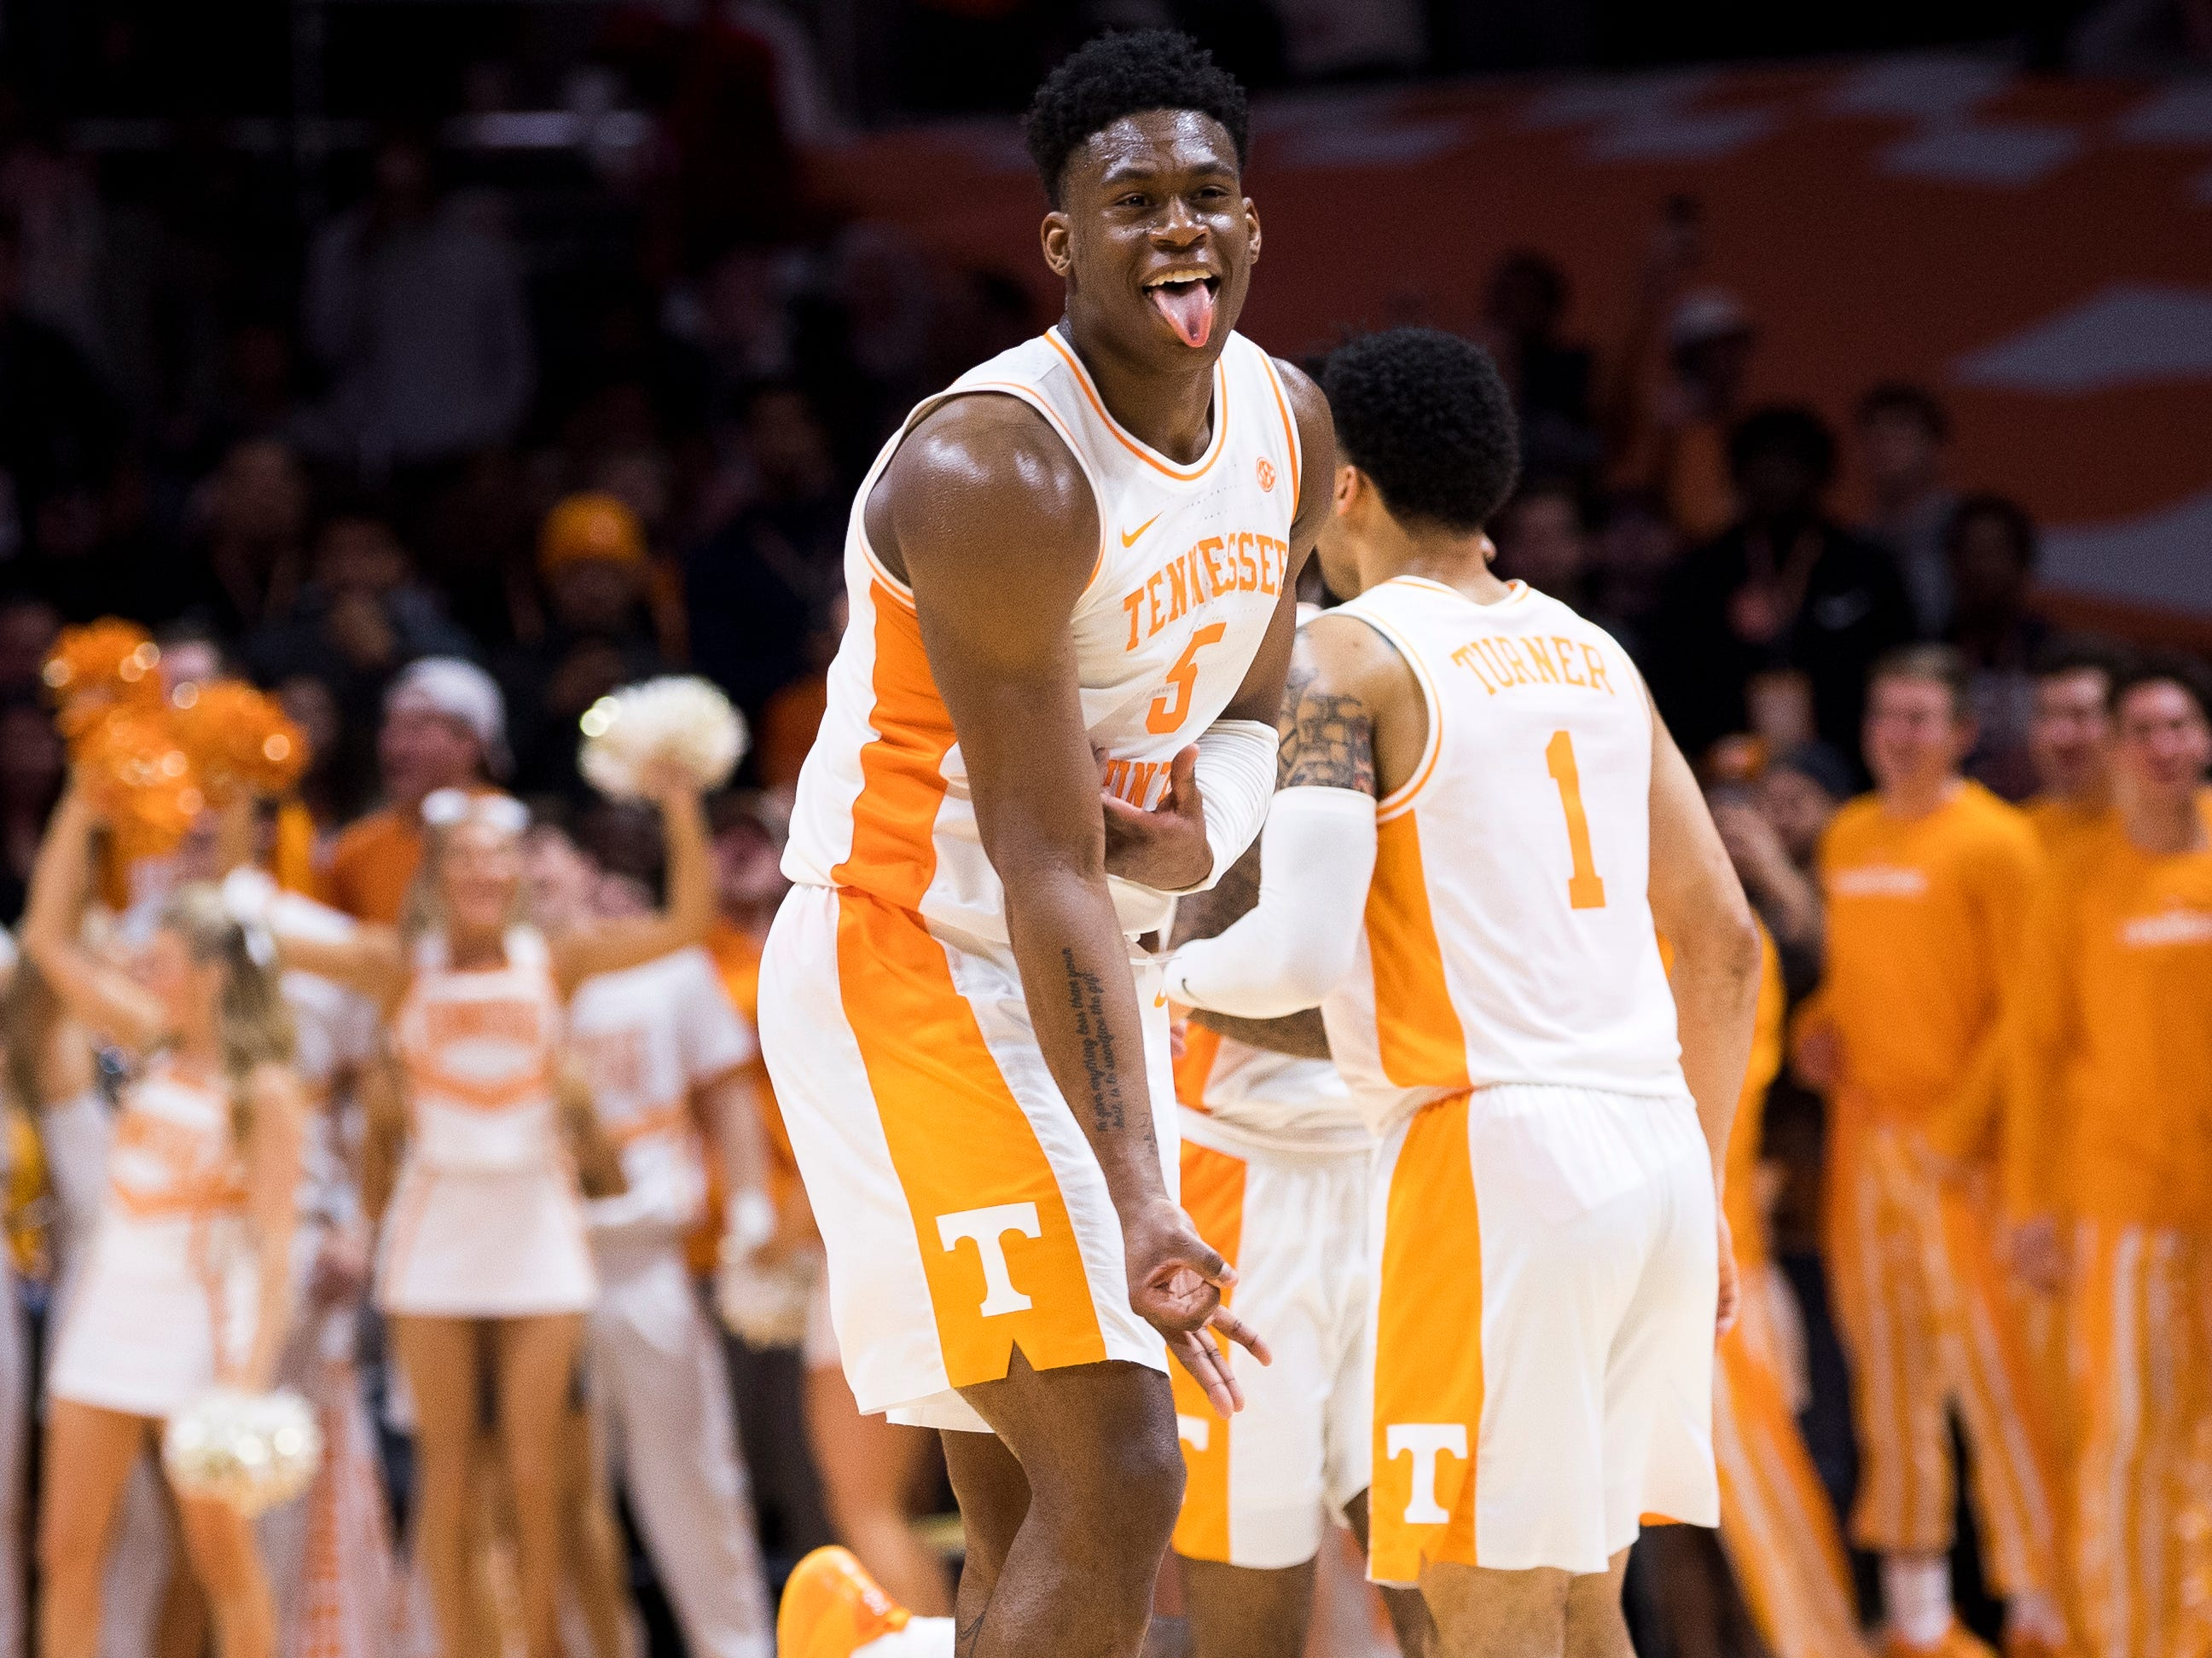 Tennessee guard Admiral Schofield (5) celebrates a three-pointer during Tennessee's home basketball game against Kentucky at Thompson-Boling Arena in Knoxville on Saturday, March 2, 2019.